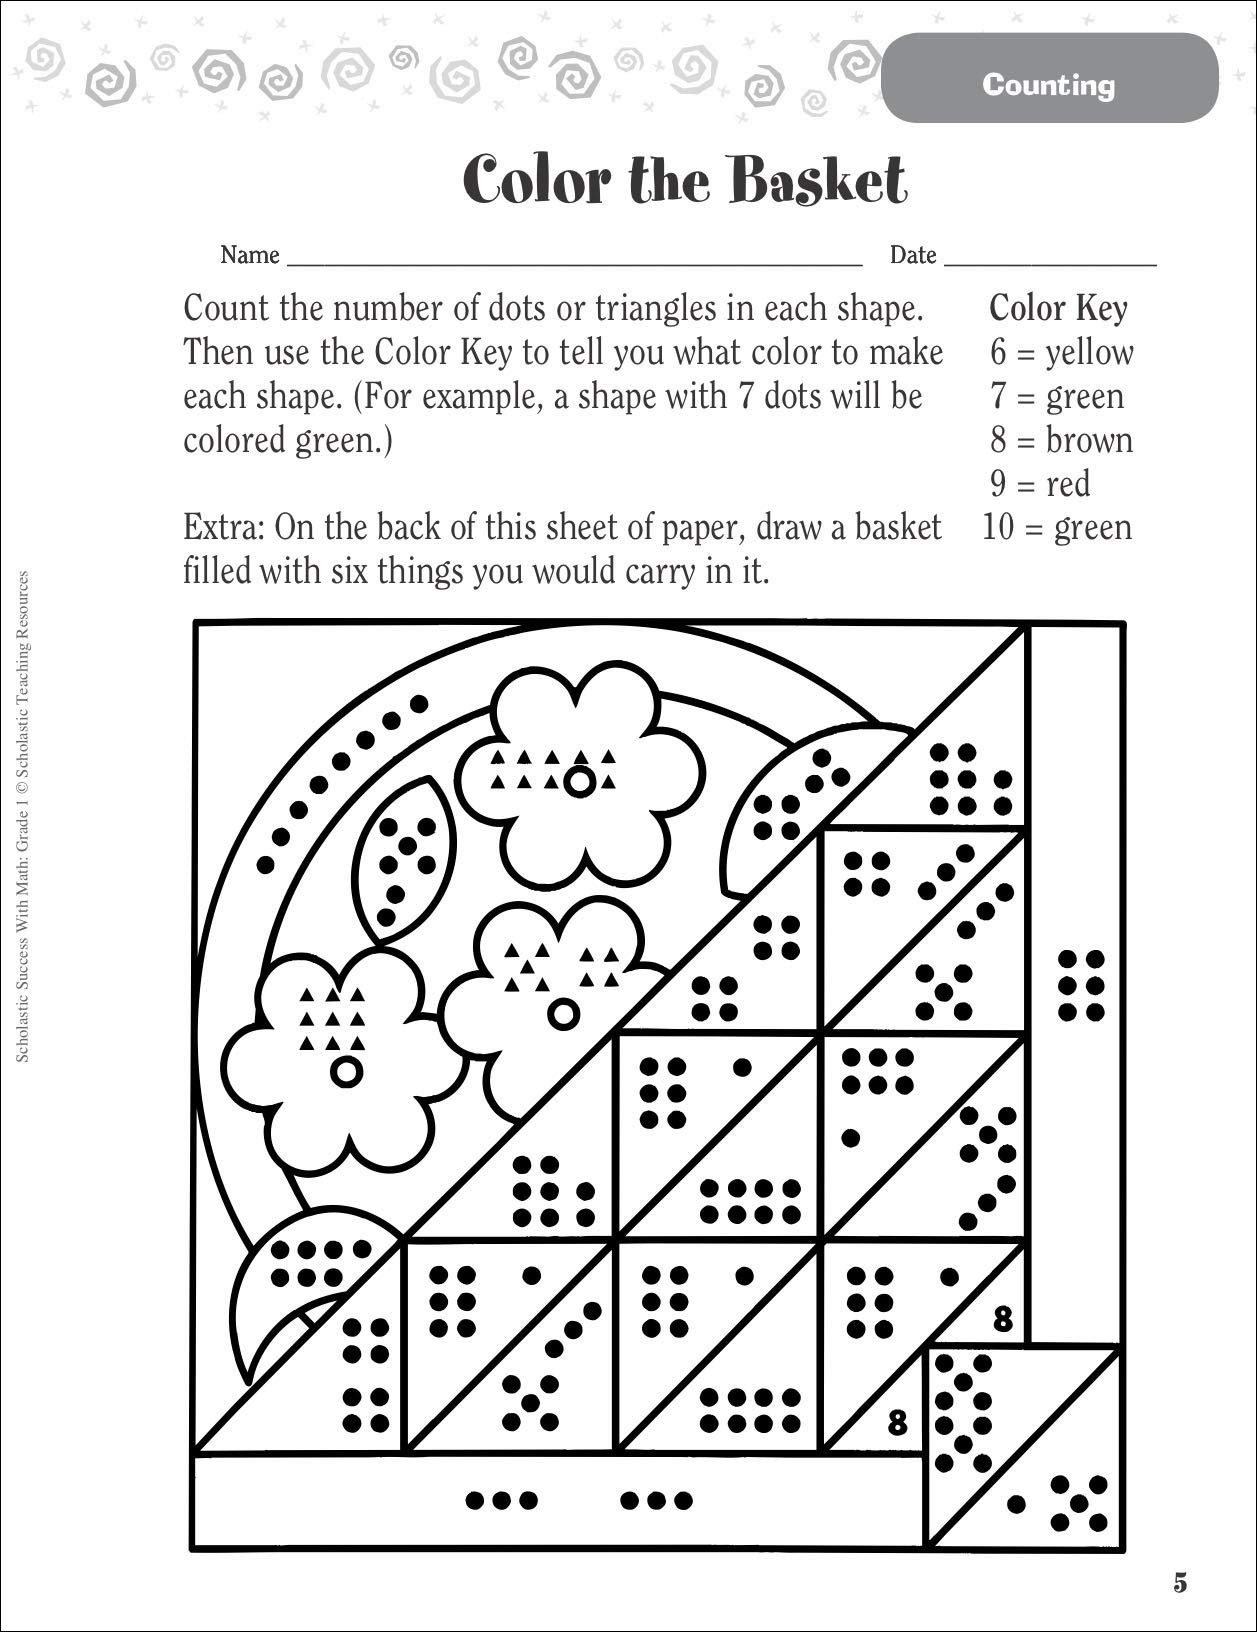 Bar Models Worksheets 2nd Grade Worksheet Ideas Prehension Stage Freerksheets for Kids